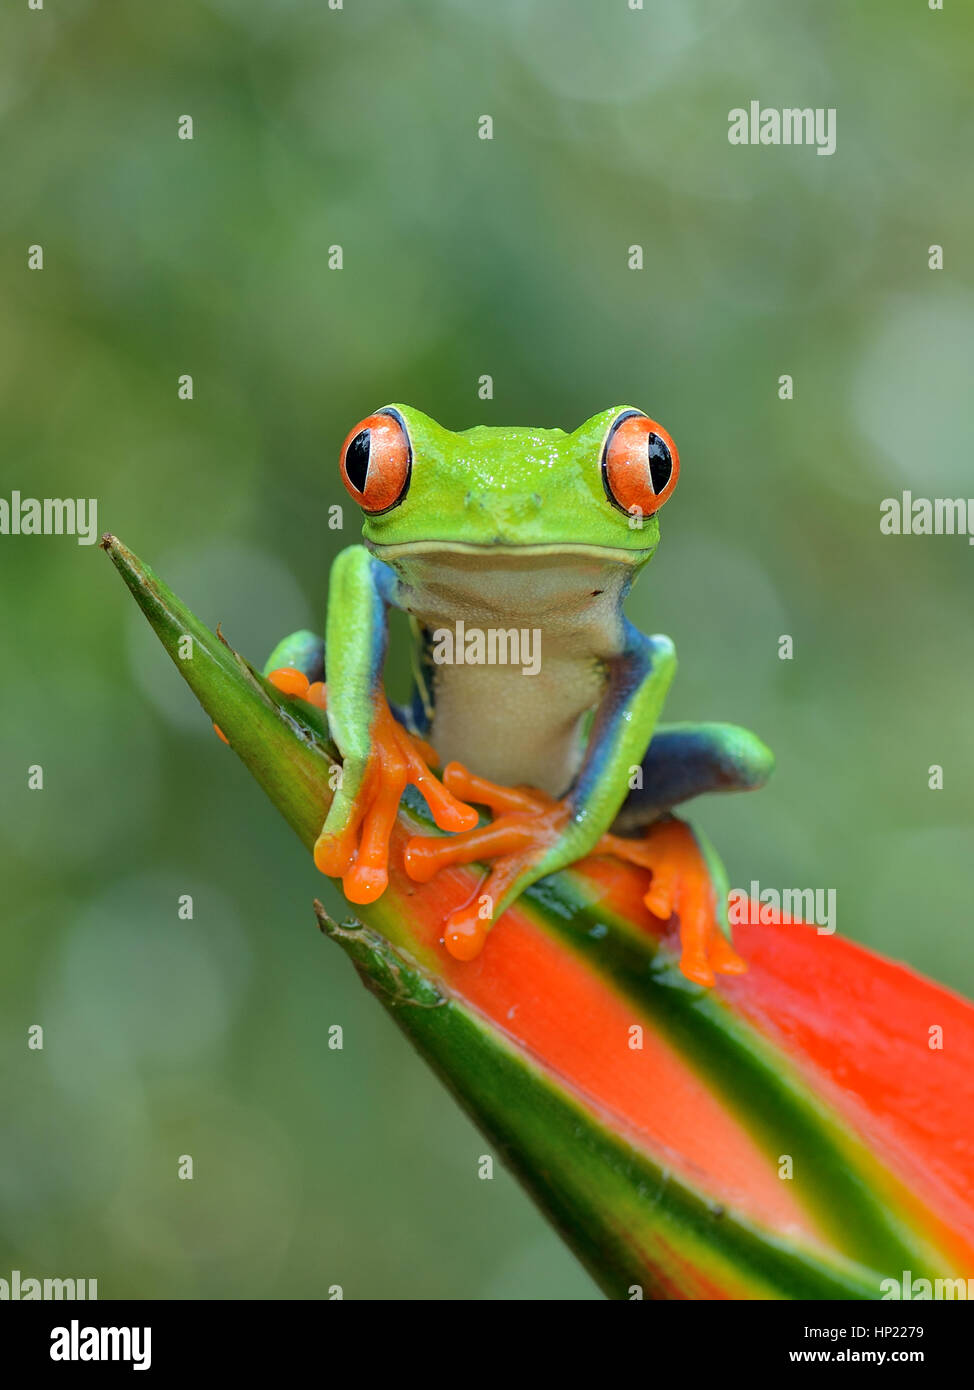 Red-eyed Raganella in Costa Rica rain forest Immagini Stock